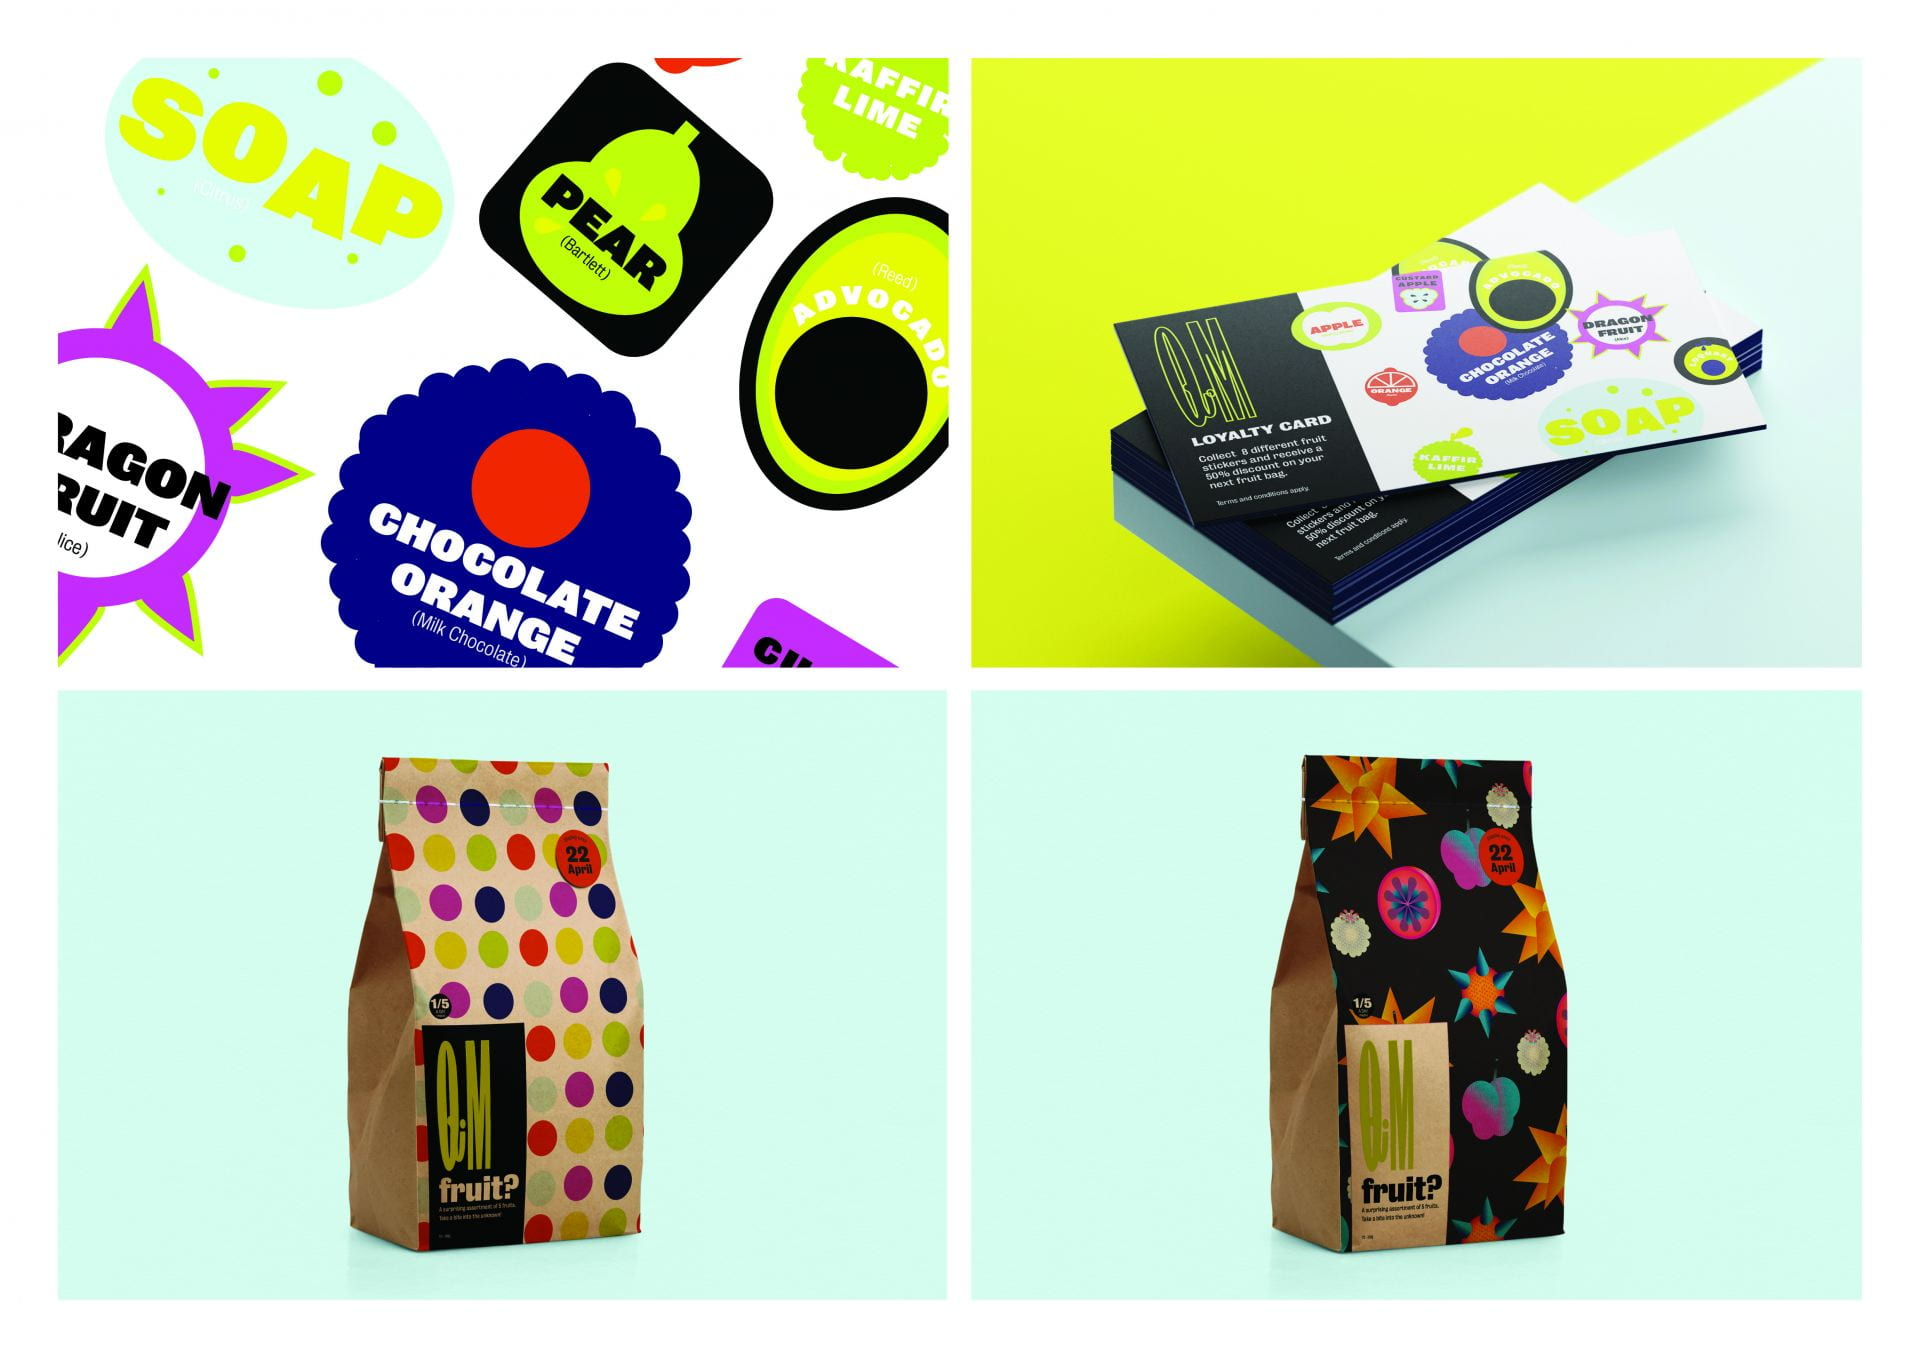 Loyalty cards and bags of fruit, brightly coloured and patterned.